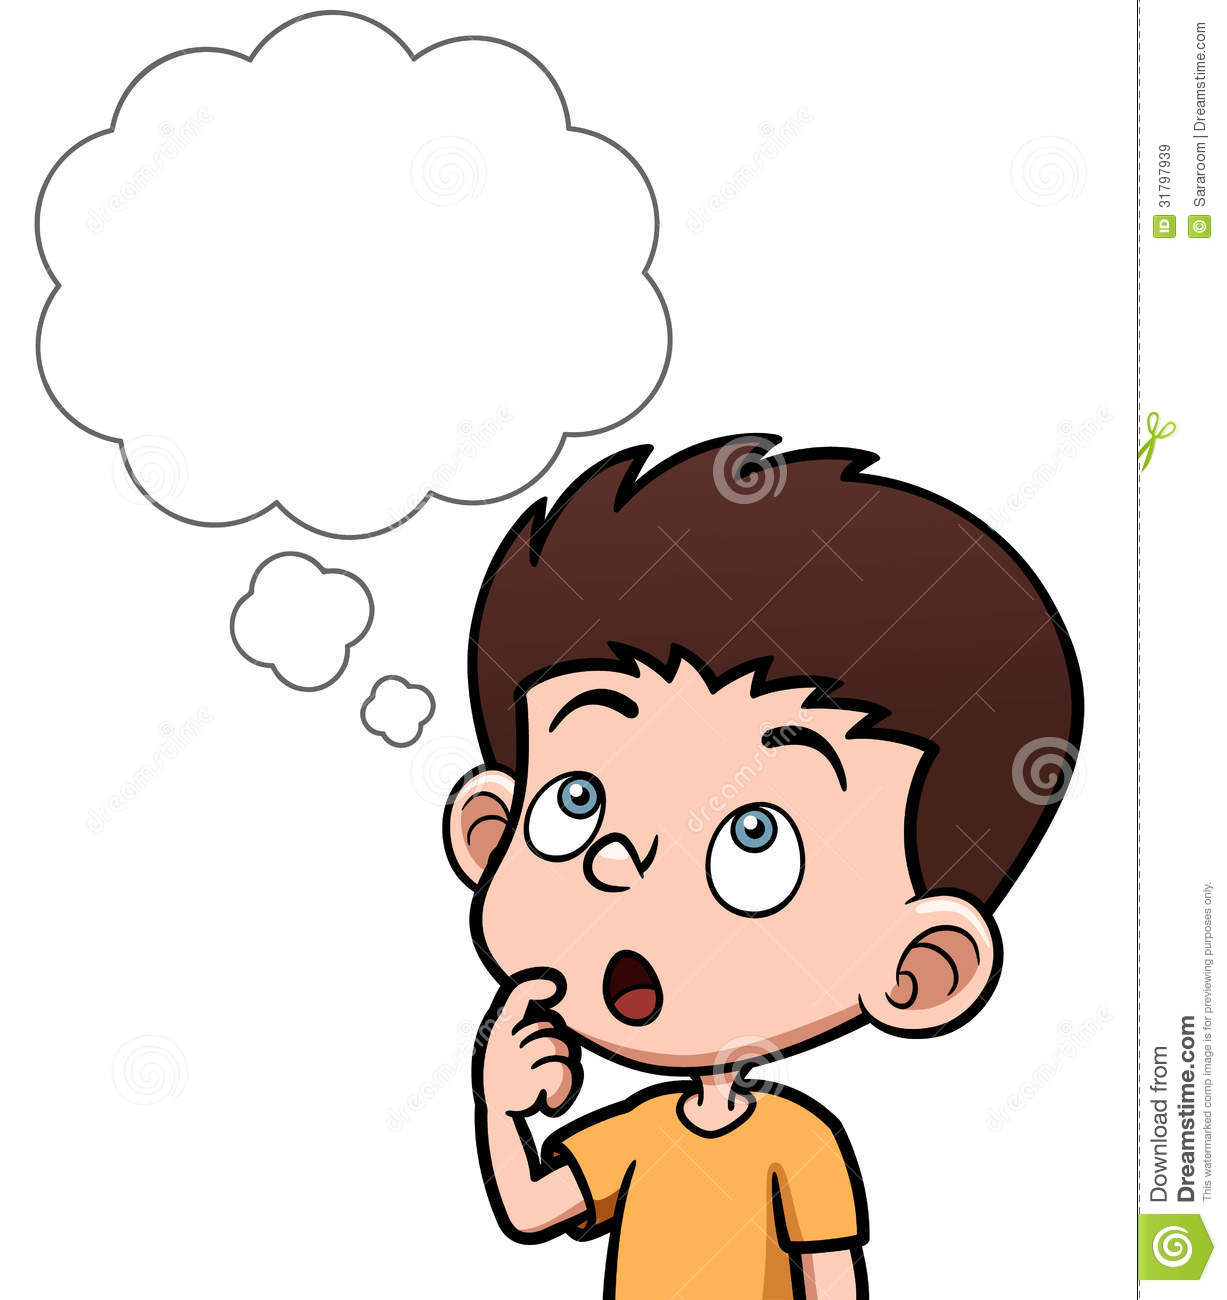 Cartoon Boy Thinking With White Bubble Royalty Free Stock Images